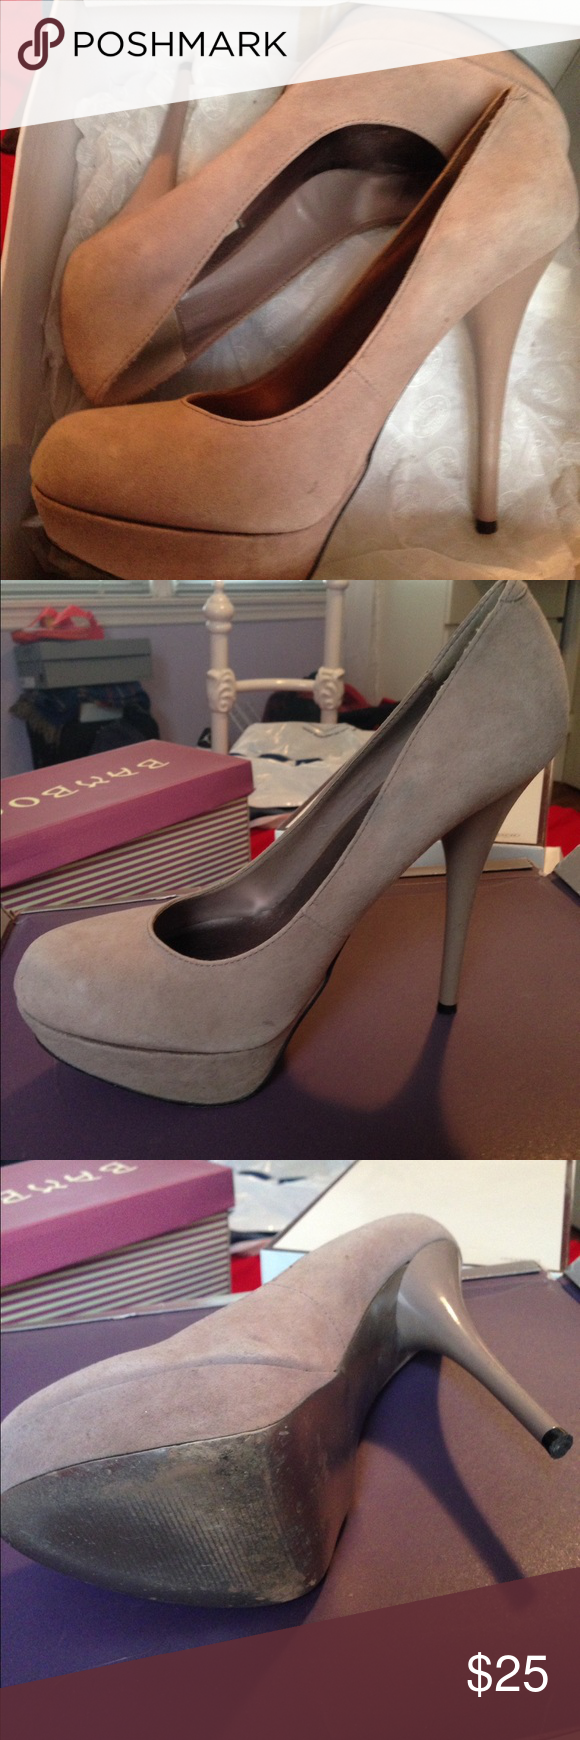 Steve Madden pumps Beautiful pumps by Steve madden size 8 1/2, in excellent condition only worn twice Steve Madden Shoes Heels